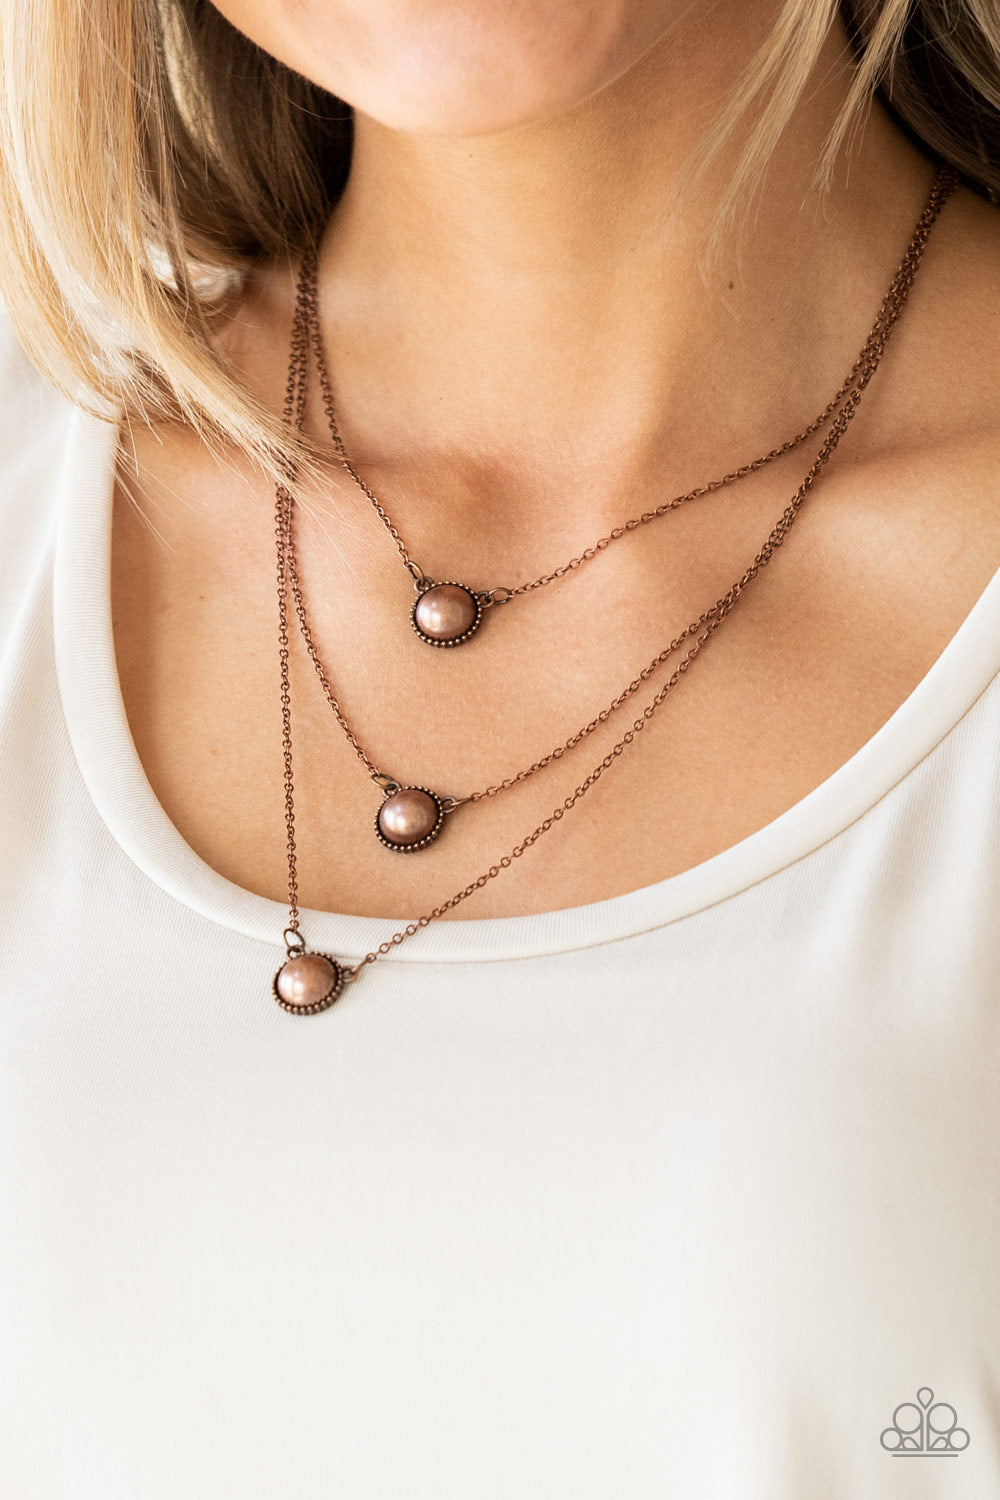 A Love For Luster - Copper Necklace - Paparazzi Accessories